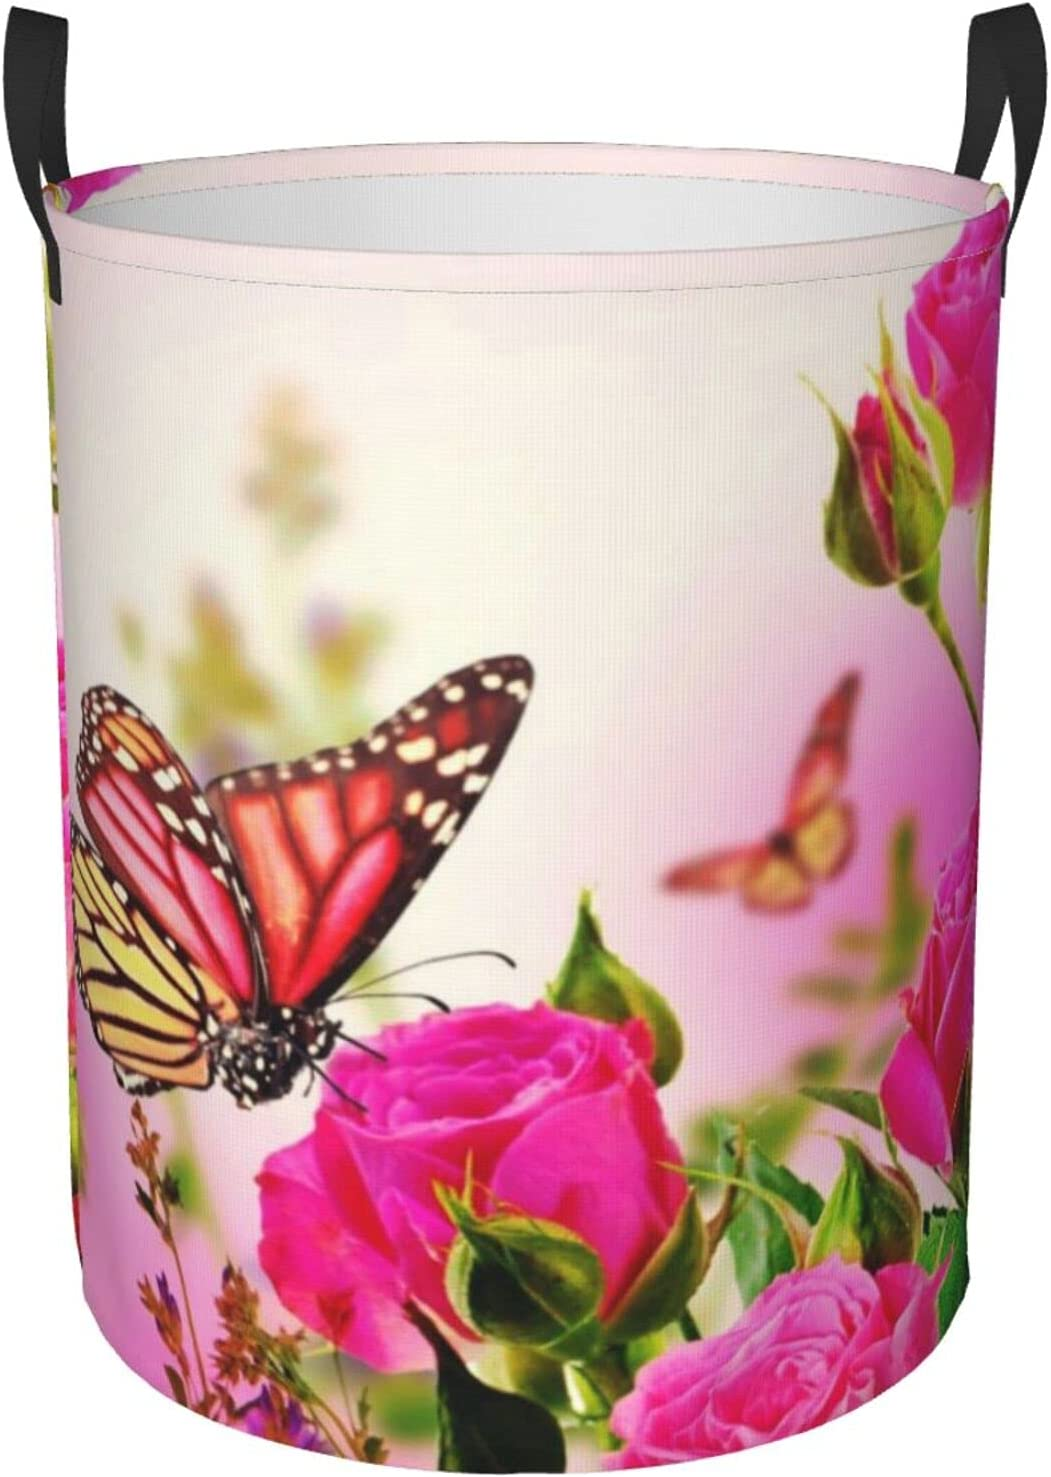 shipfree Flowers And Butterflies Circular Clothes Selling and selling Foldable Laundry Hamper